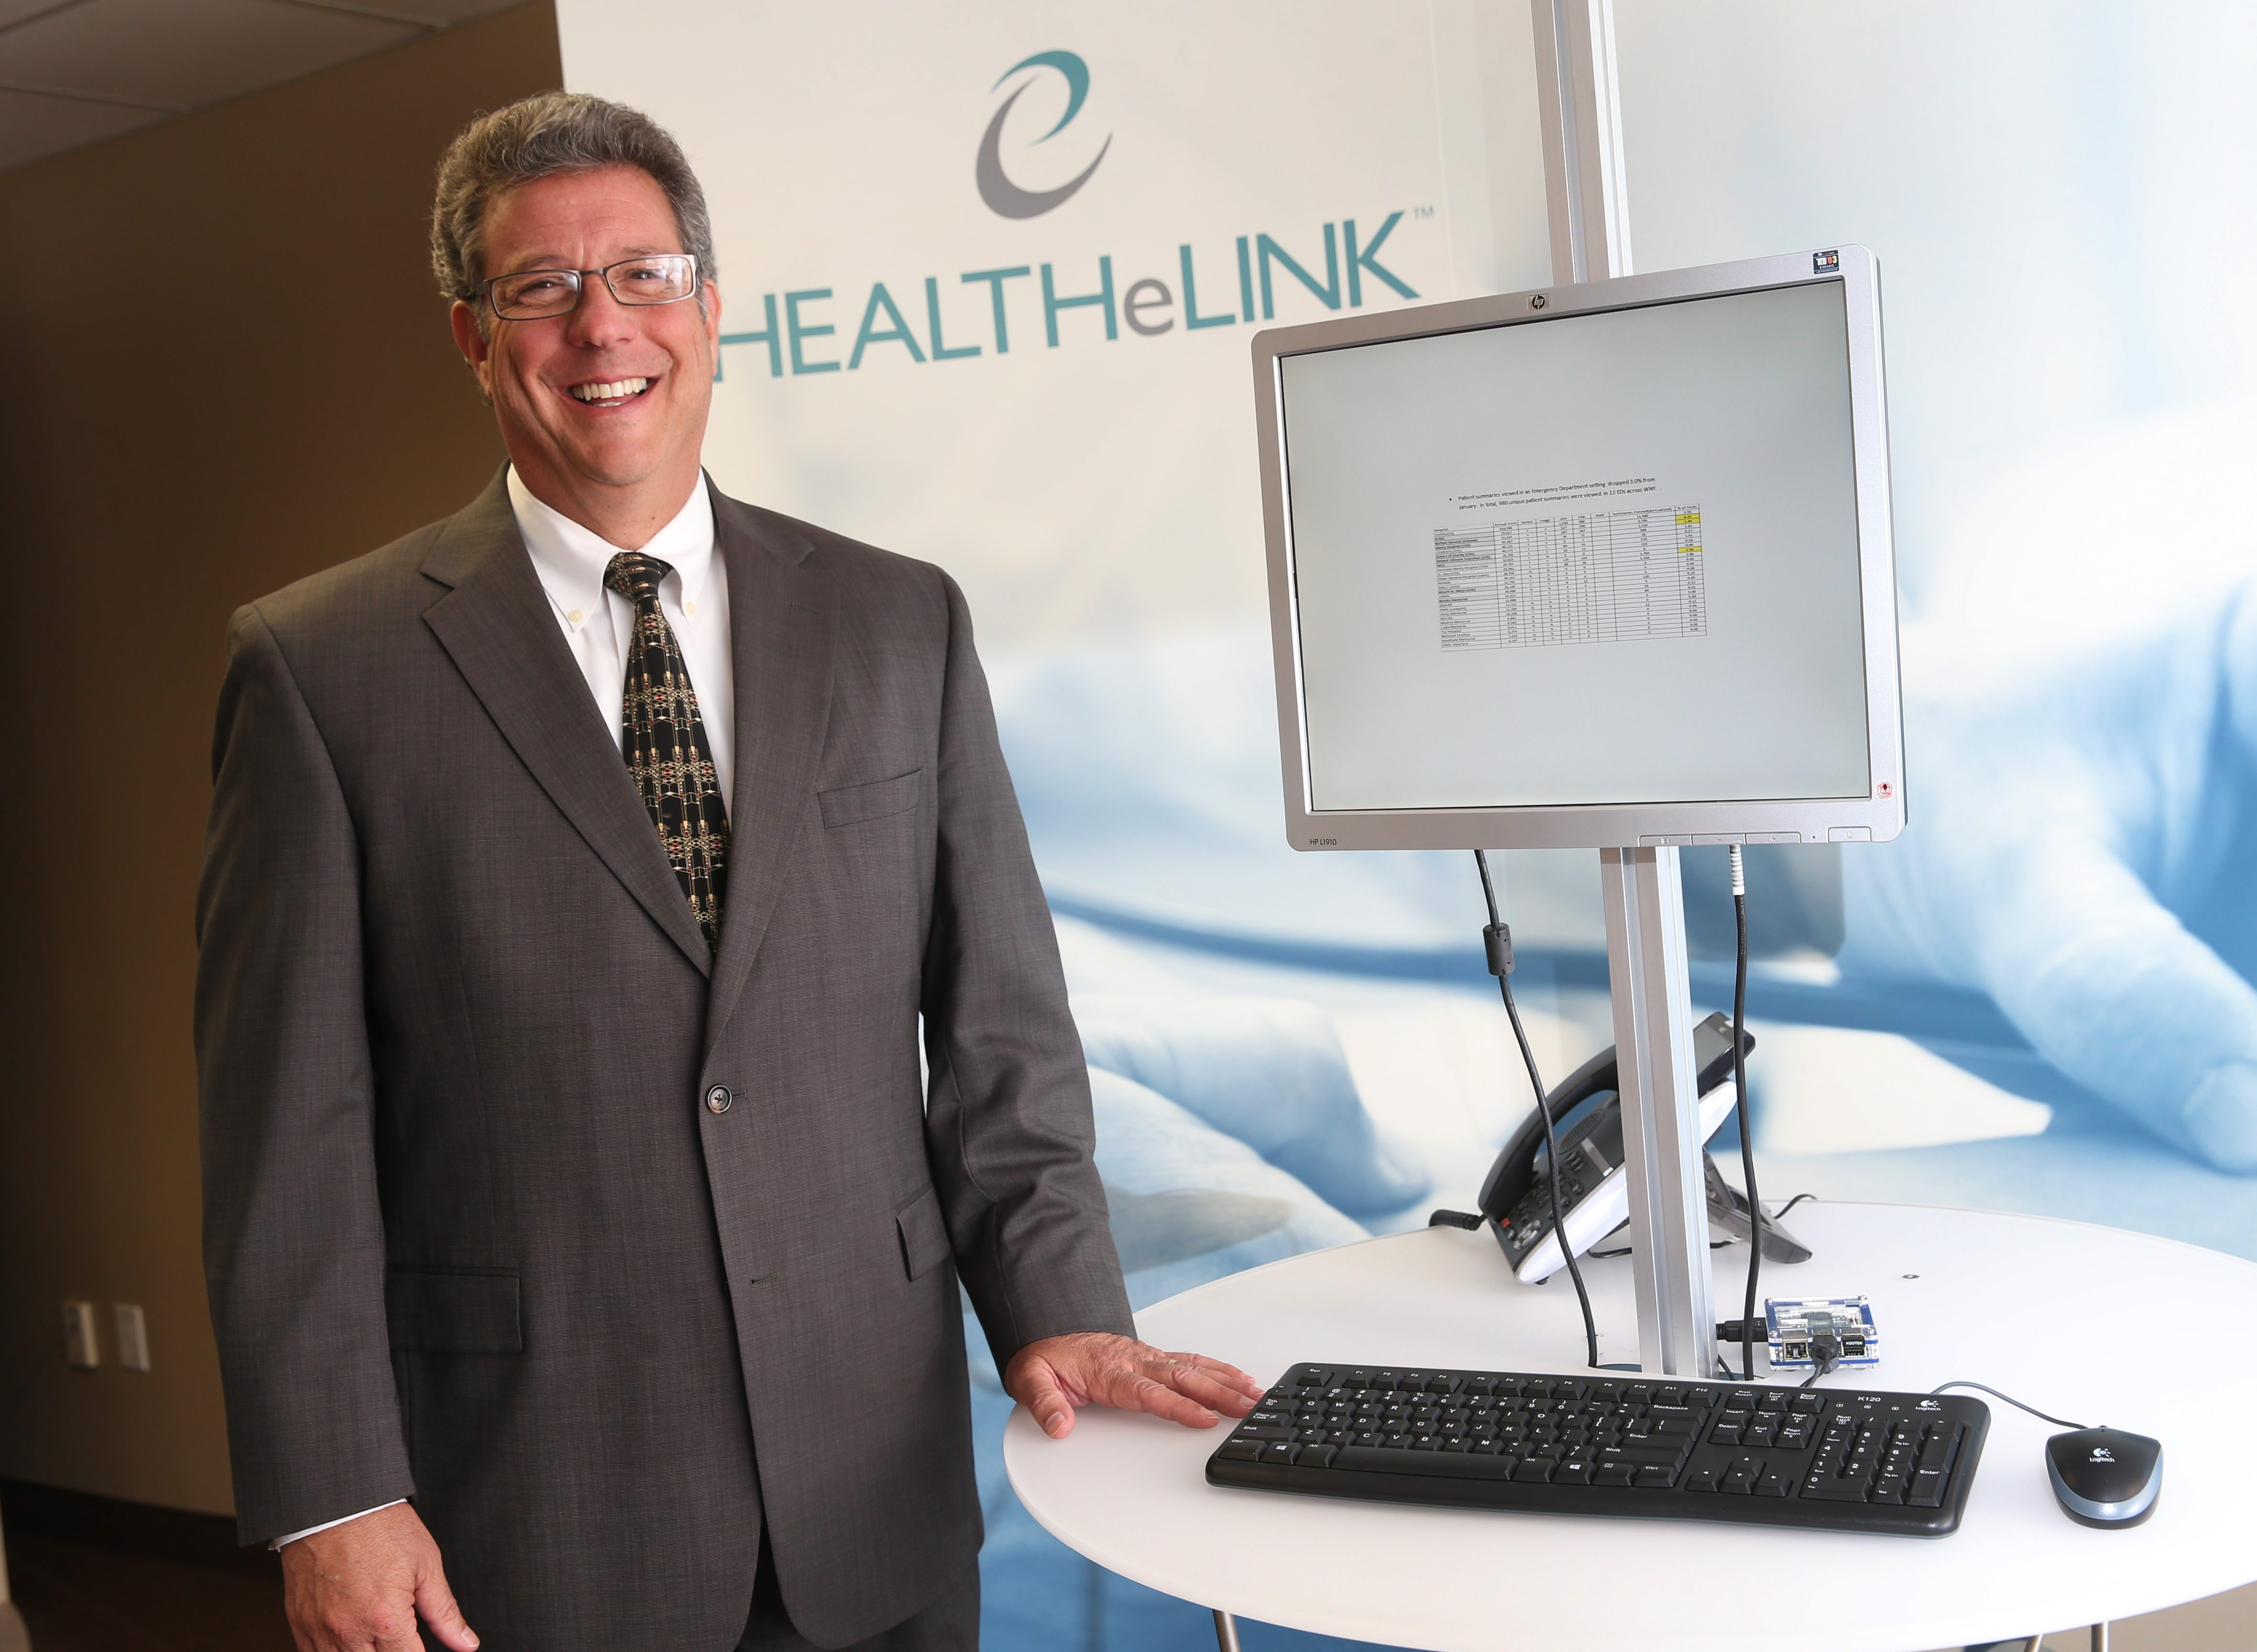 """""""It's kind of obvious that if doctors have better information, they can make better decisions."""" – Daniel Porreca, executive director of HEALTHeLINK"""